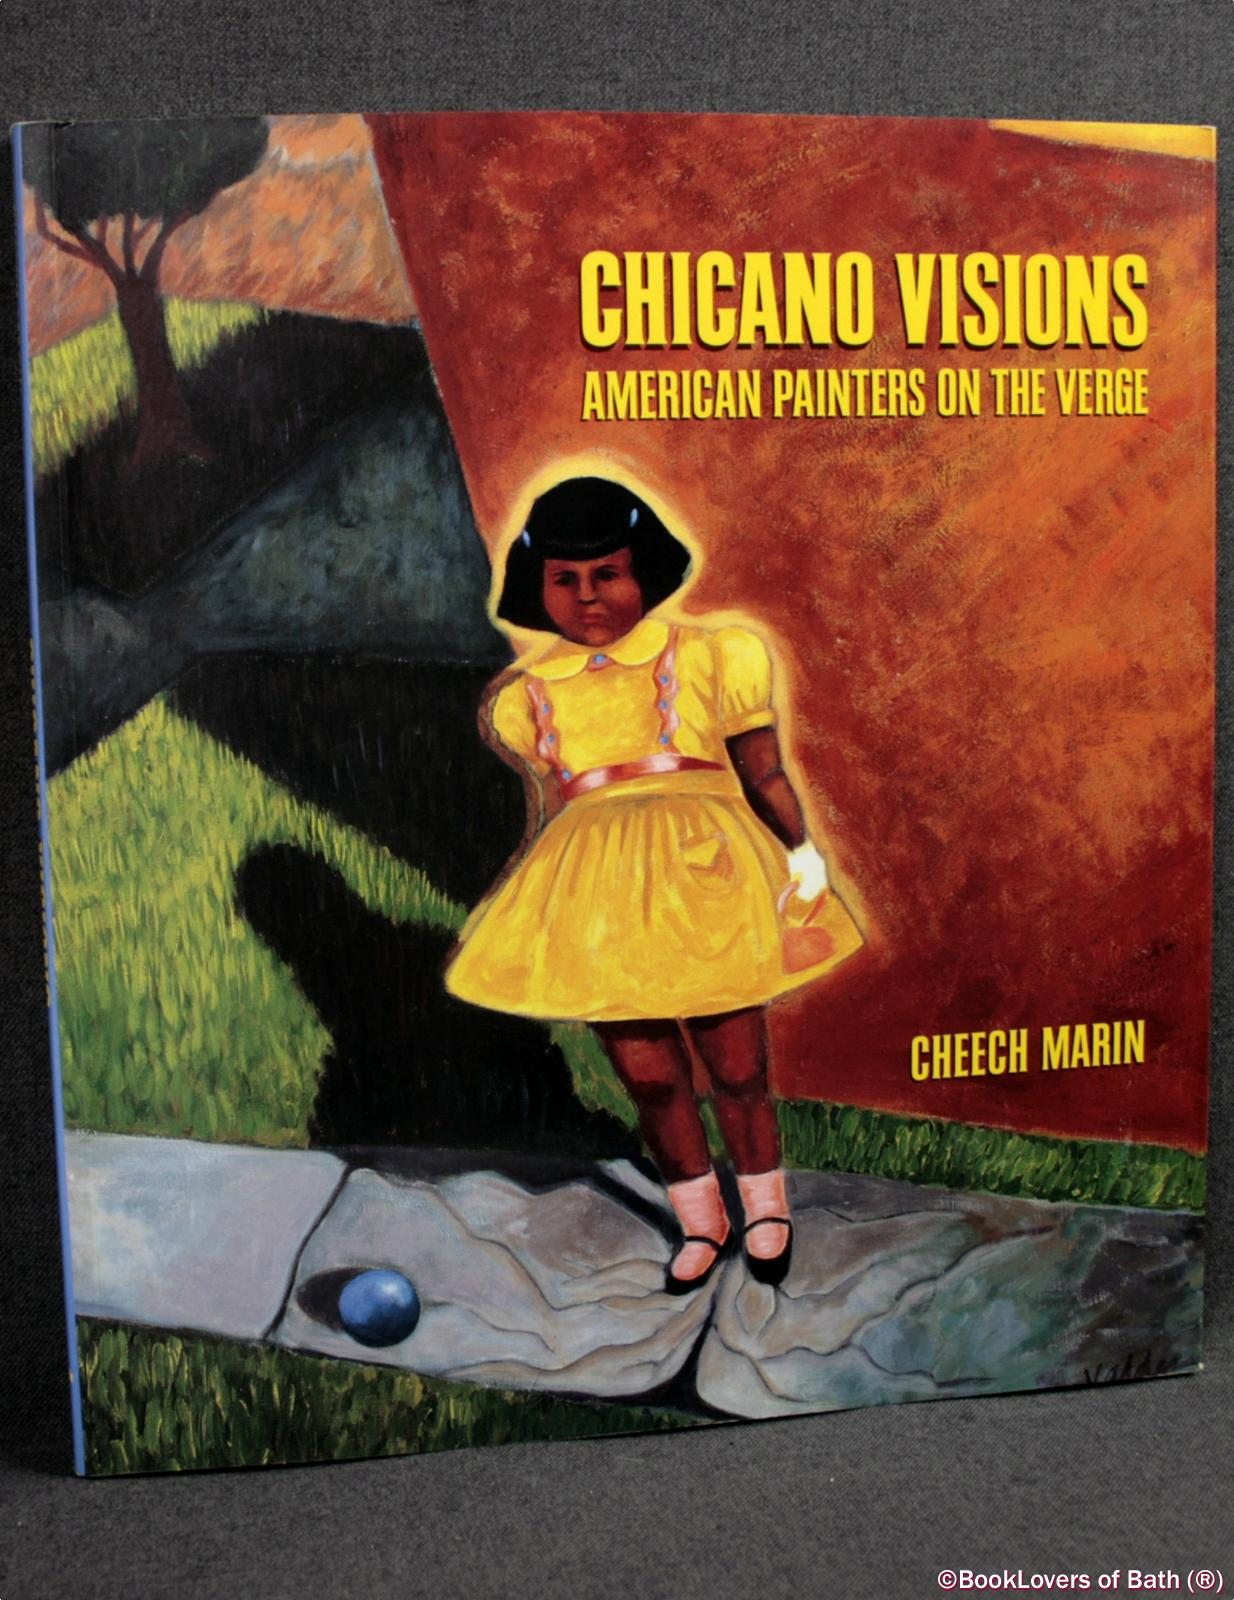 CHICANO VISIONS: American Painters On the Verge - Cheech Marin